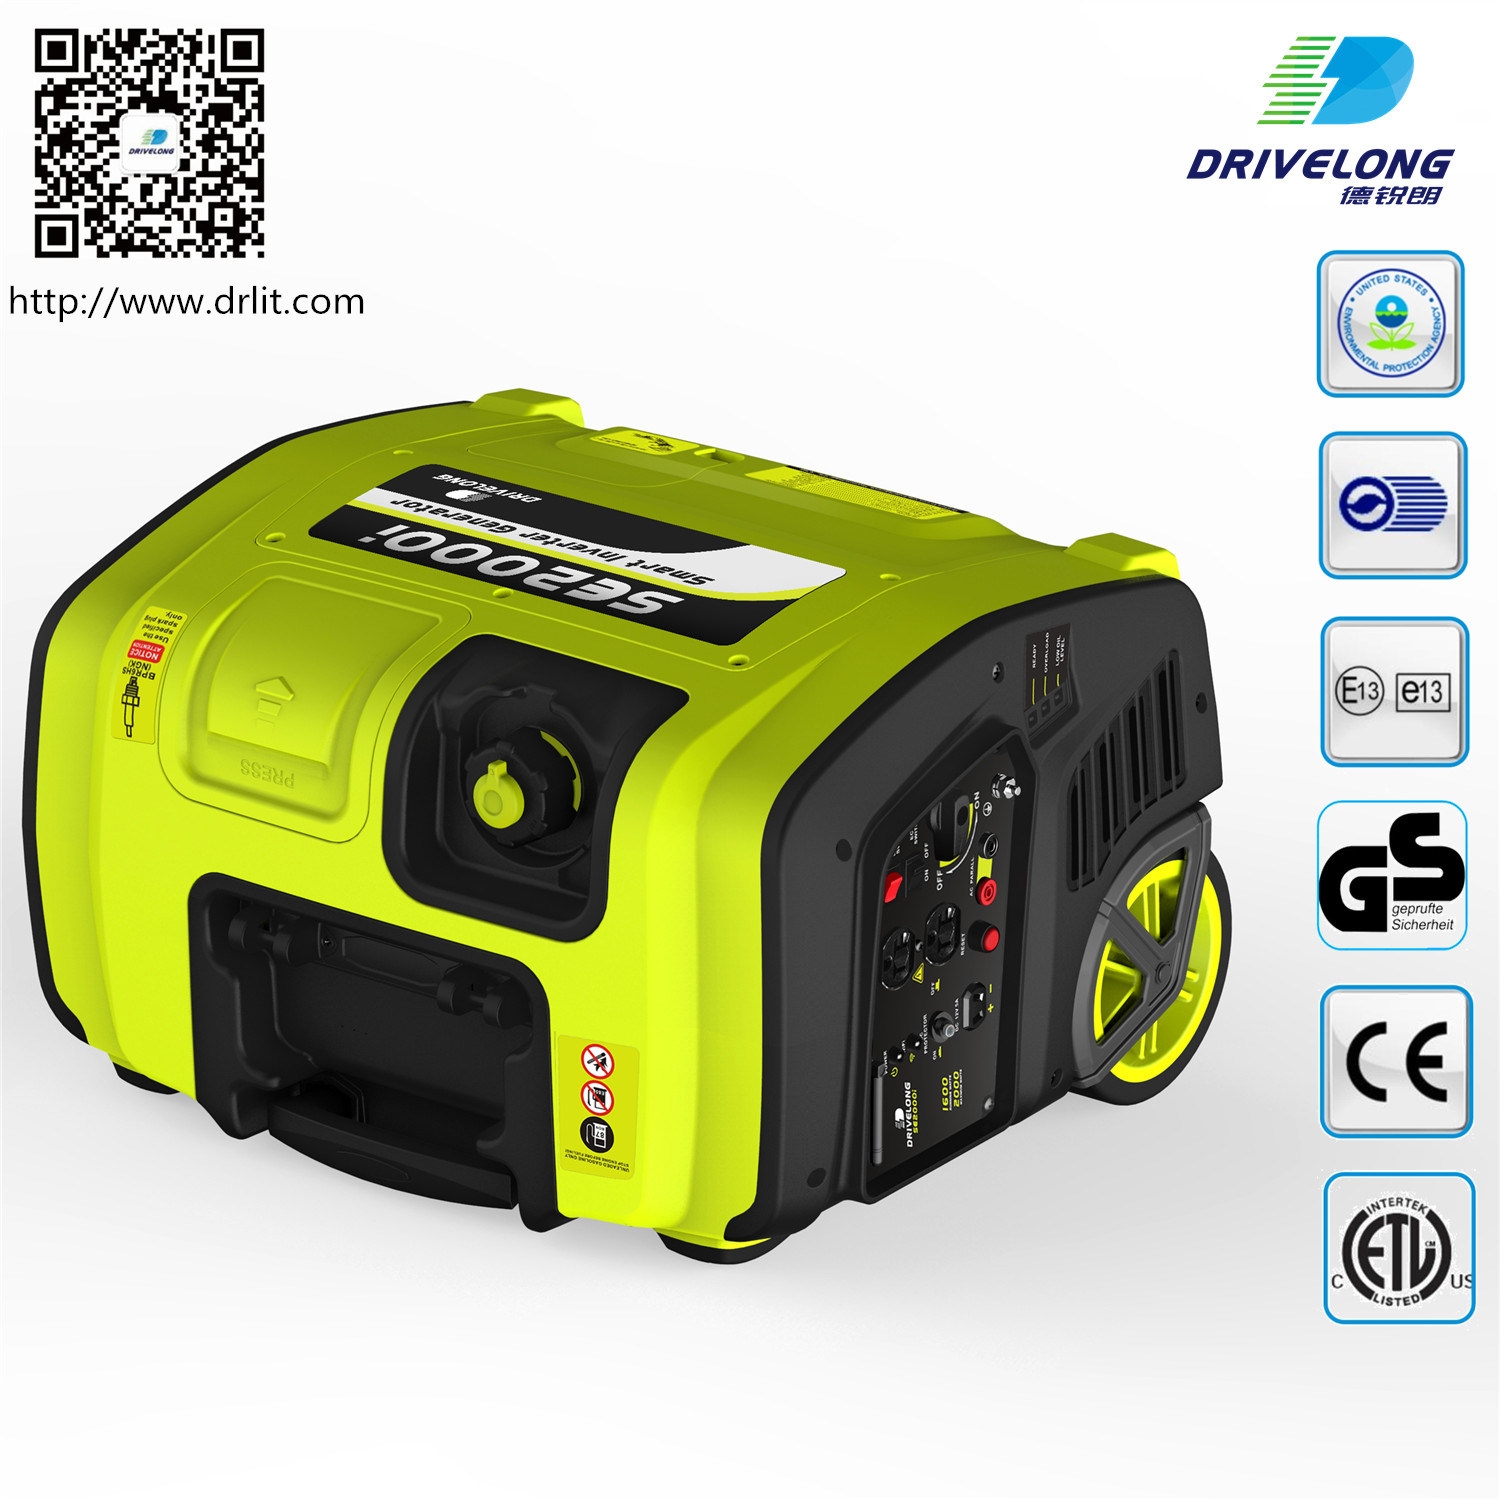 The Most Portable Digital Inverter Generator